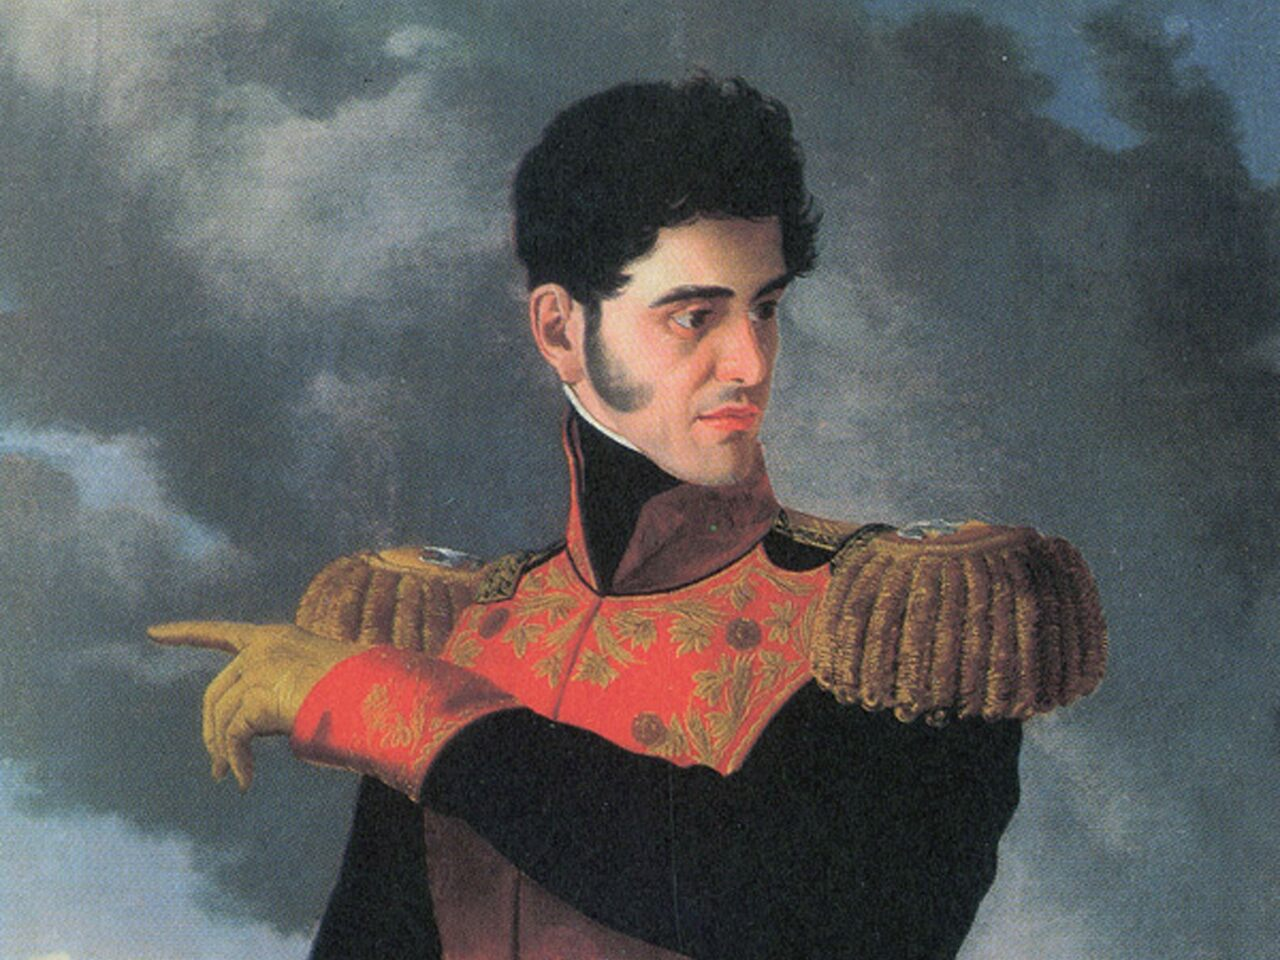 Antonio López de Santa Anna in his days as a dashing soldier, before his unglamorous exile.